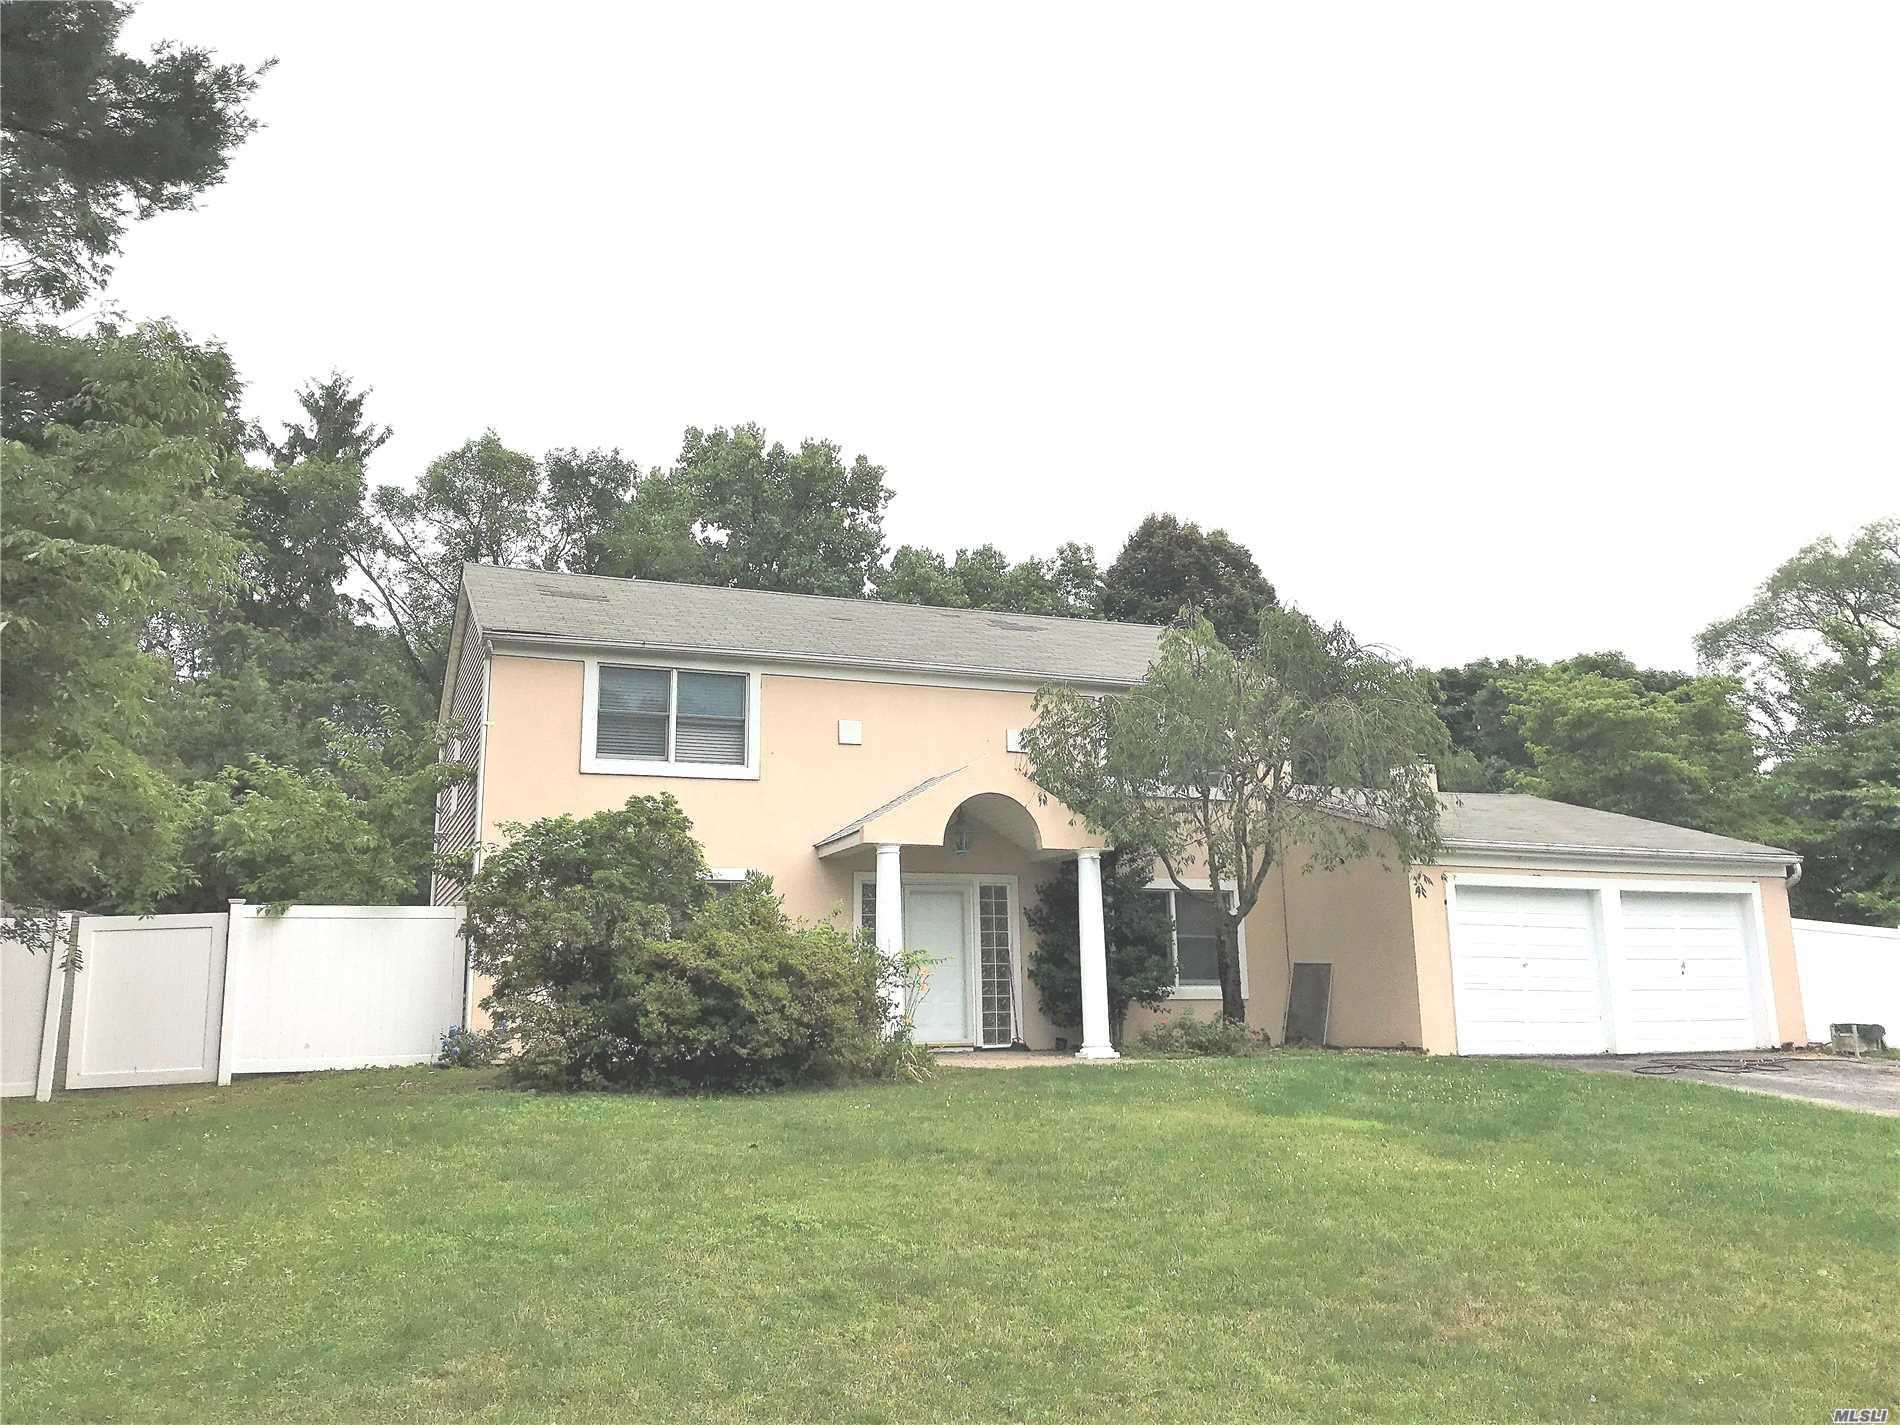 Cambridge Colonial W/Entry Foyer, 2 Full Baths. 1/2 Bath W/New Hardwood Floor Through Whole House, New Kitchen, Granite Count Top, Tile Floor, Eik W/ Stainless Refrig And Dishwasher. Slider To Patio, Formal Lrm, Formal Drm, Laundry Rm, Paver Patio, Ig Pool, 200 Amp Elec., Hot Water Heater, 275 Gal. Above Ground Oil Tank, White Pvc Fenced Property. Working Pool Closed.